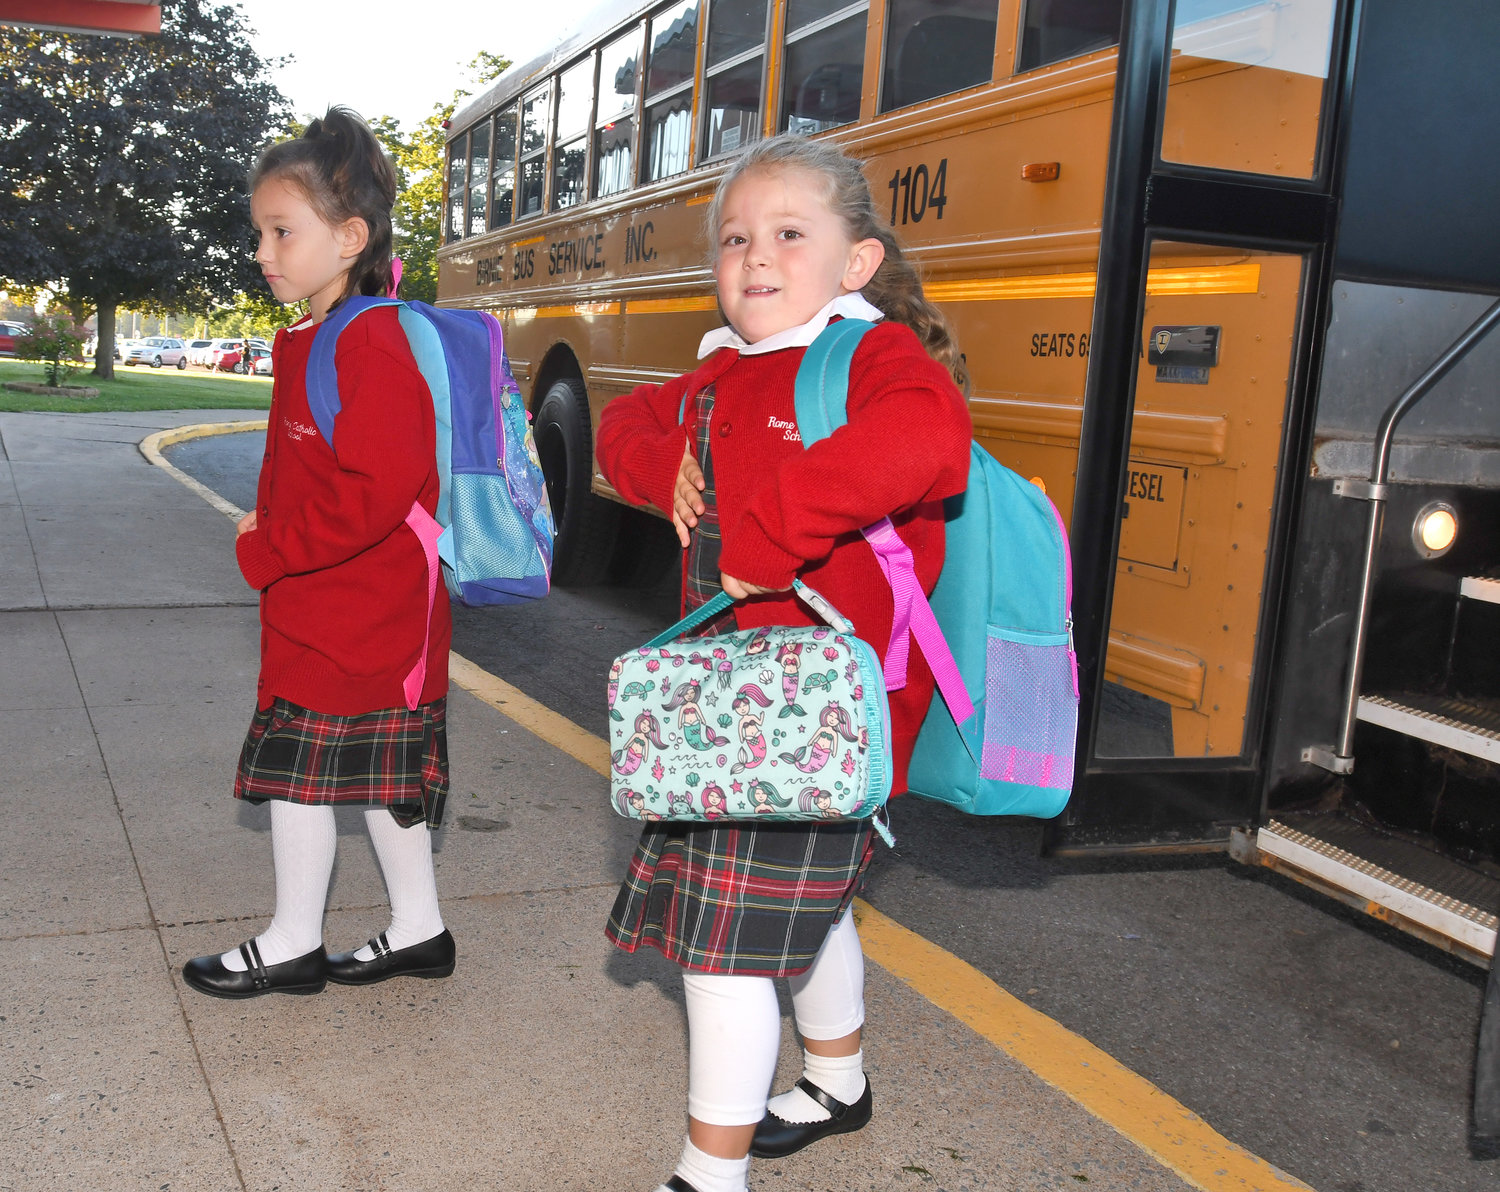 ARRIVING AT CYPRESS STREET — Rome Catholic School students Milena Kittleman and Alessandra Schneider depart their bus this morning on the first day of classes at the 800 Cypress St. school. They are both kindergarteners. RCS has returned to its longtime Cypress Street site for the 2019-20 school year after being at another site for the past three years.